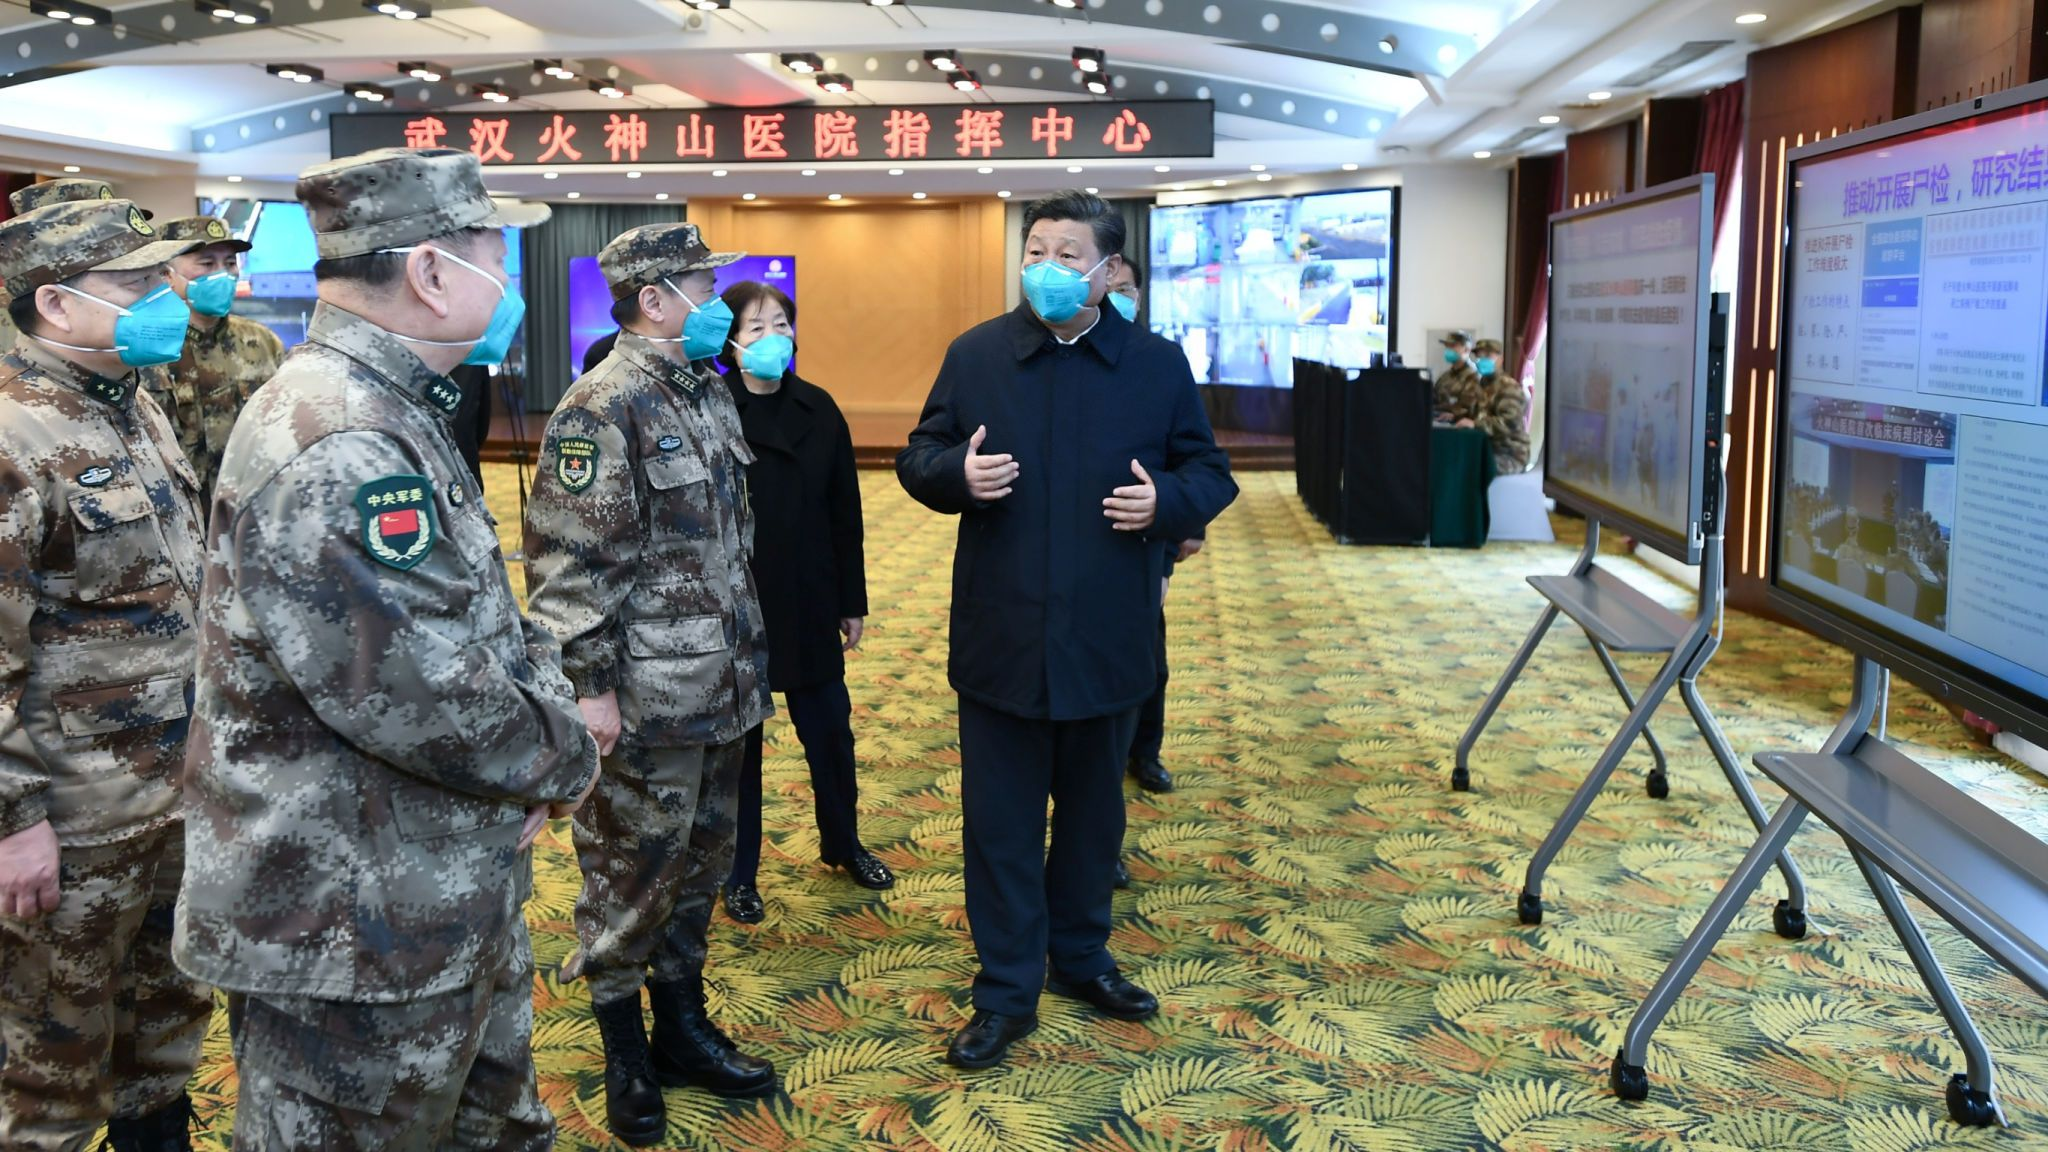 President Xi Jinping learns about a hospital's infection treatment processes in Wuhan